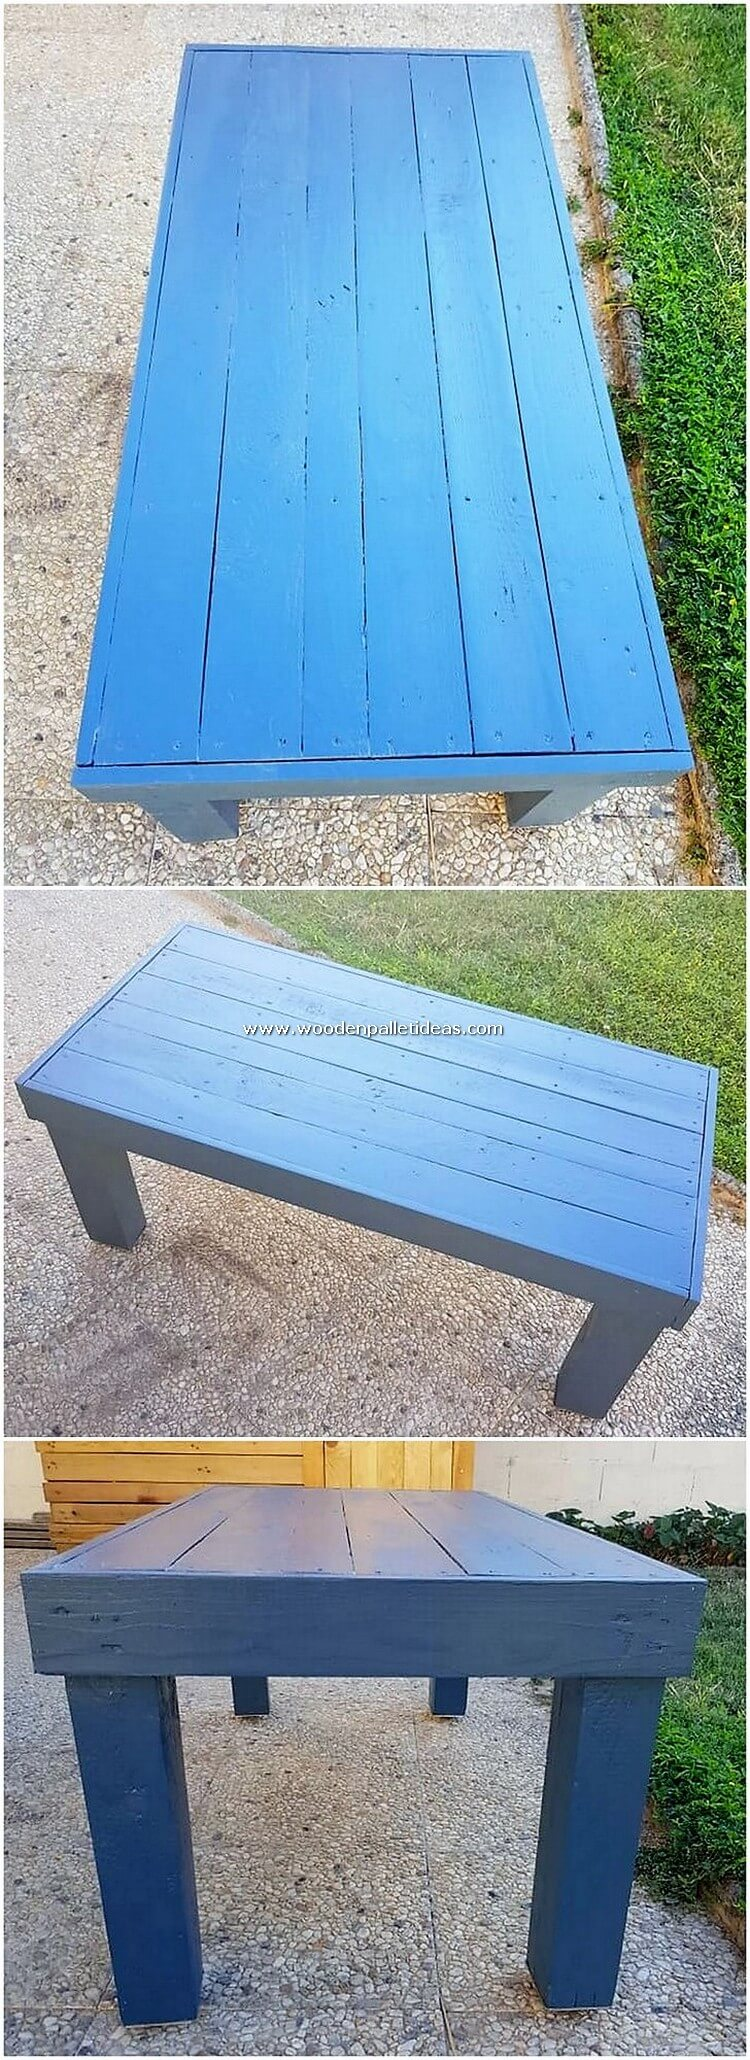 Wooden-Pallet-Table-1